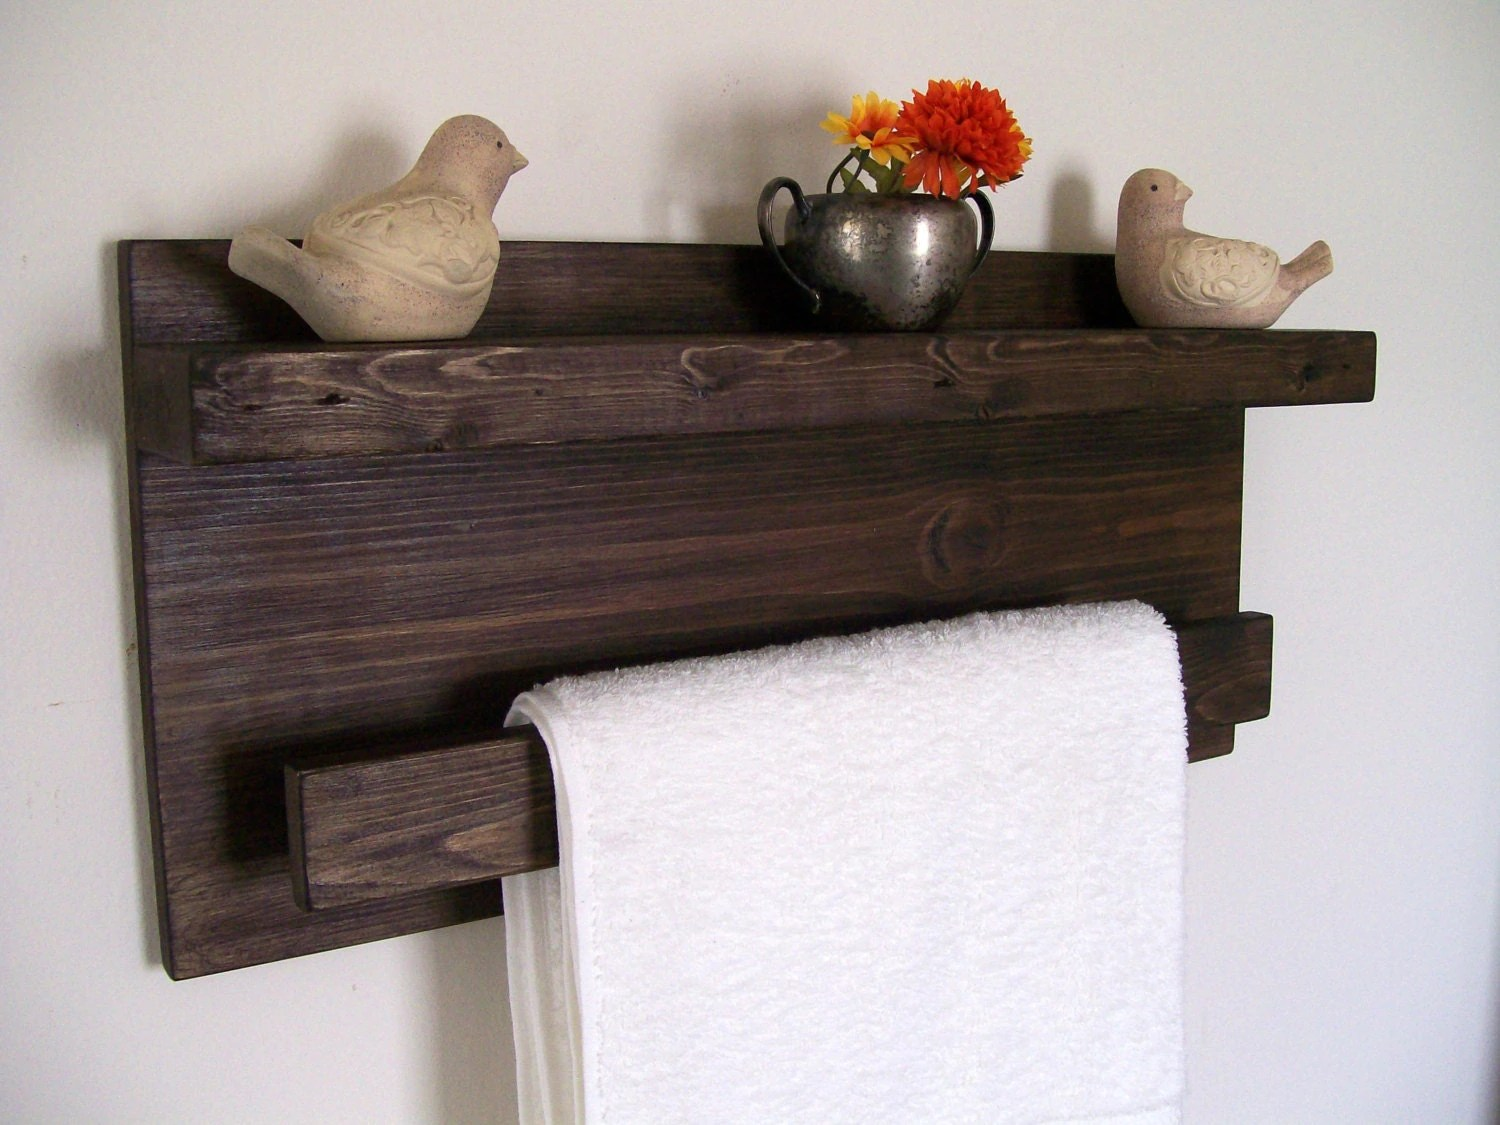 Holz Handtuchhalter Bathroom Shelves Wood Shelf Towel Rack Towel Bar Floating